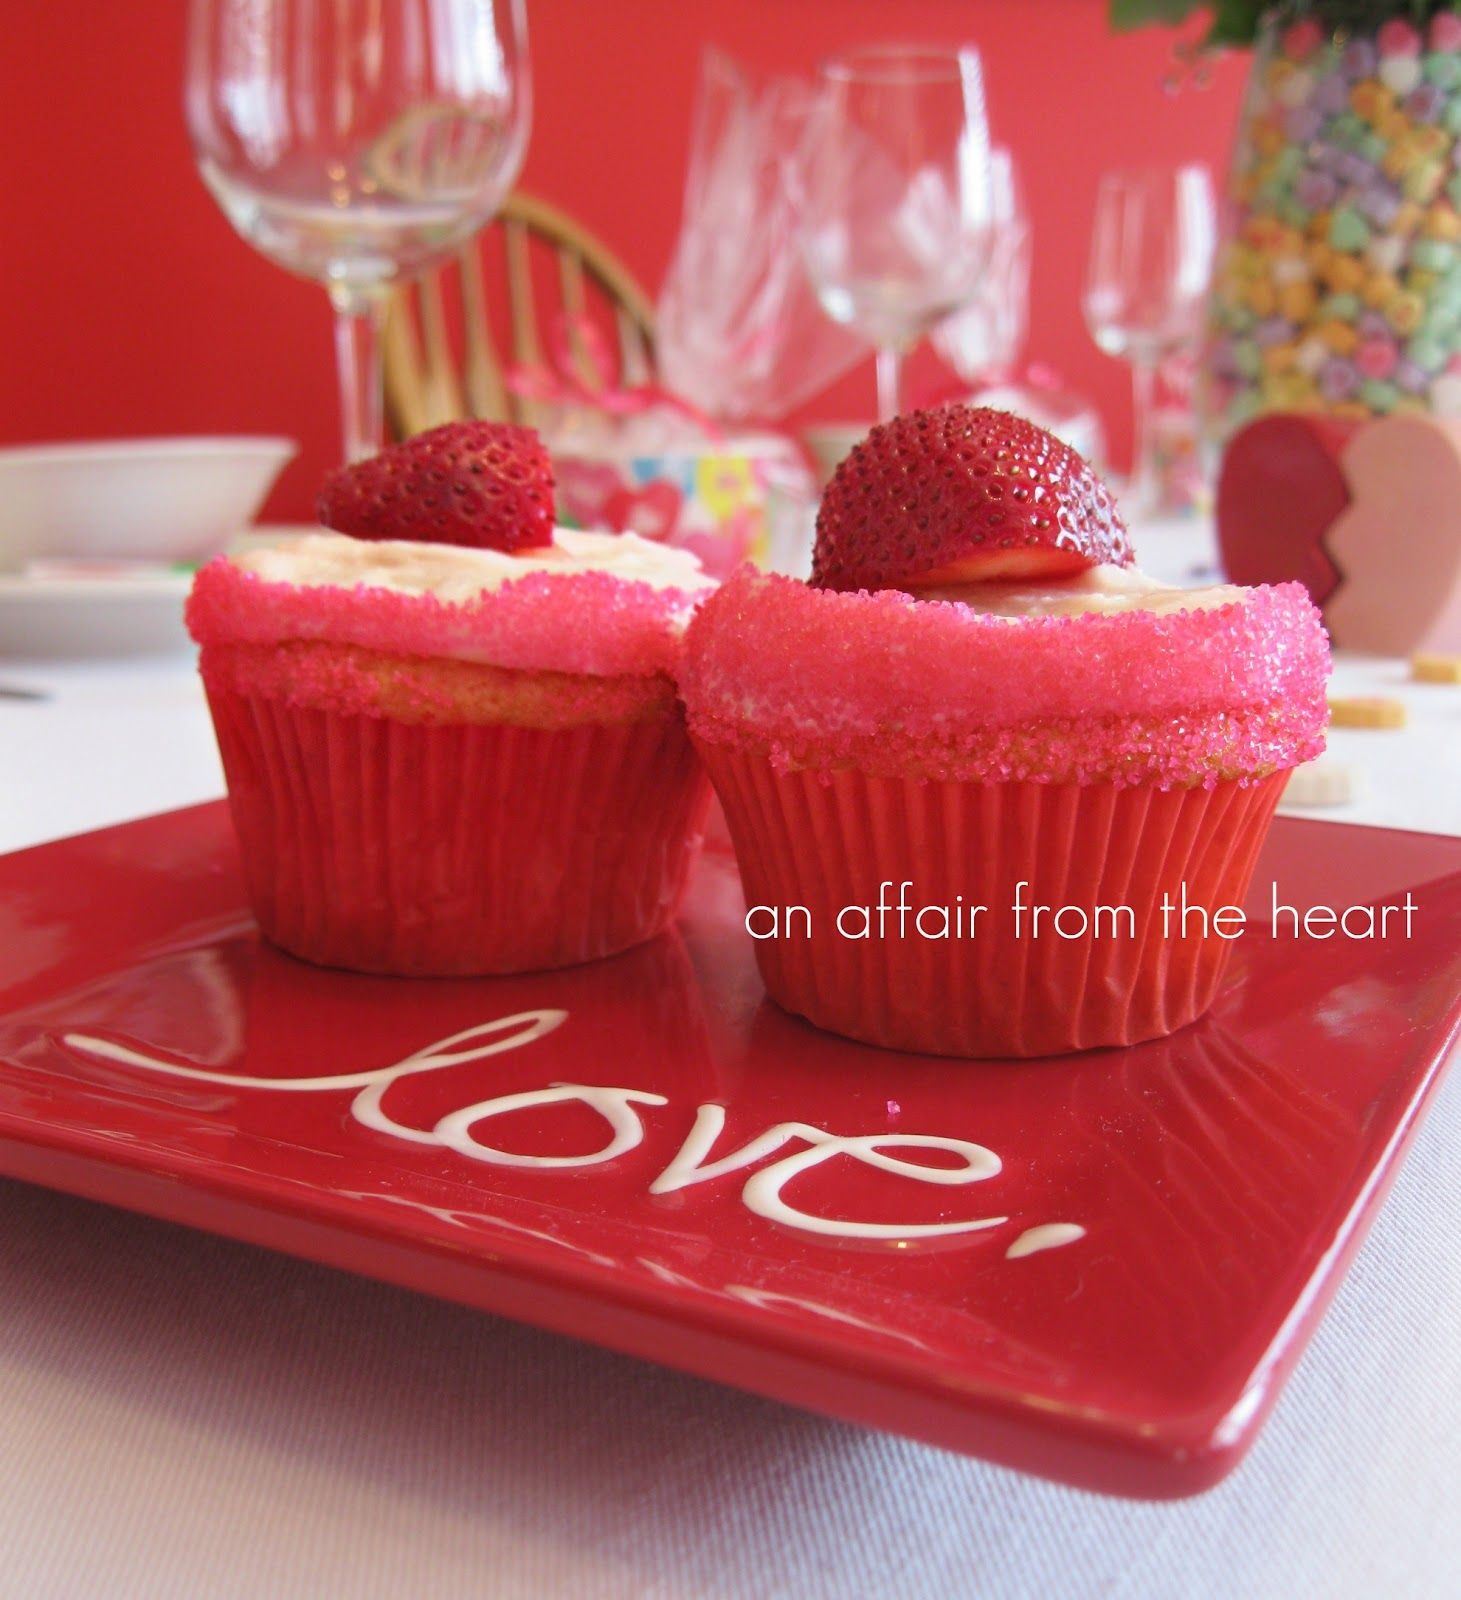 an affair from the heart: Strawberry Daiquiri Cupcakes. Add an umbrella for the complete look!